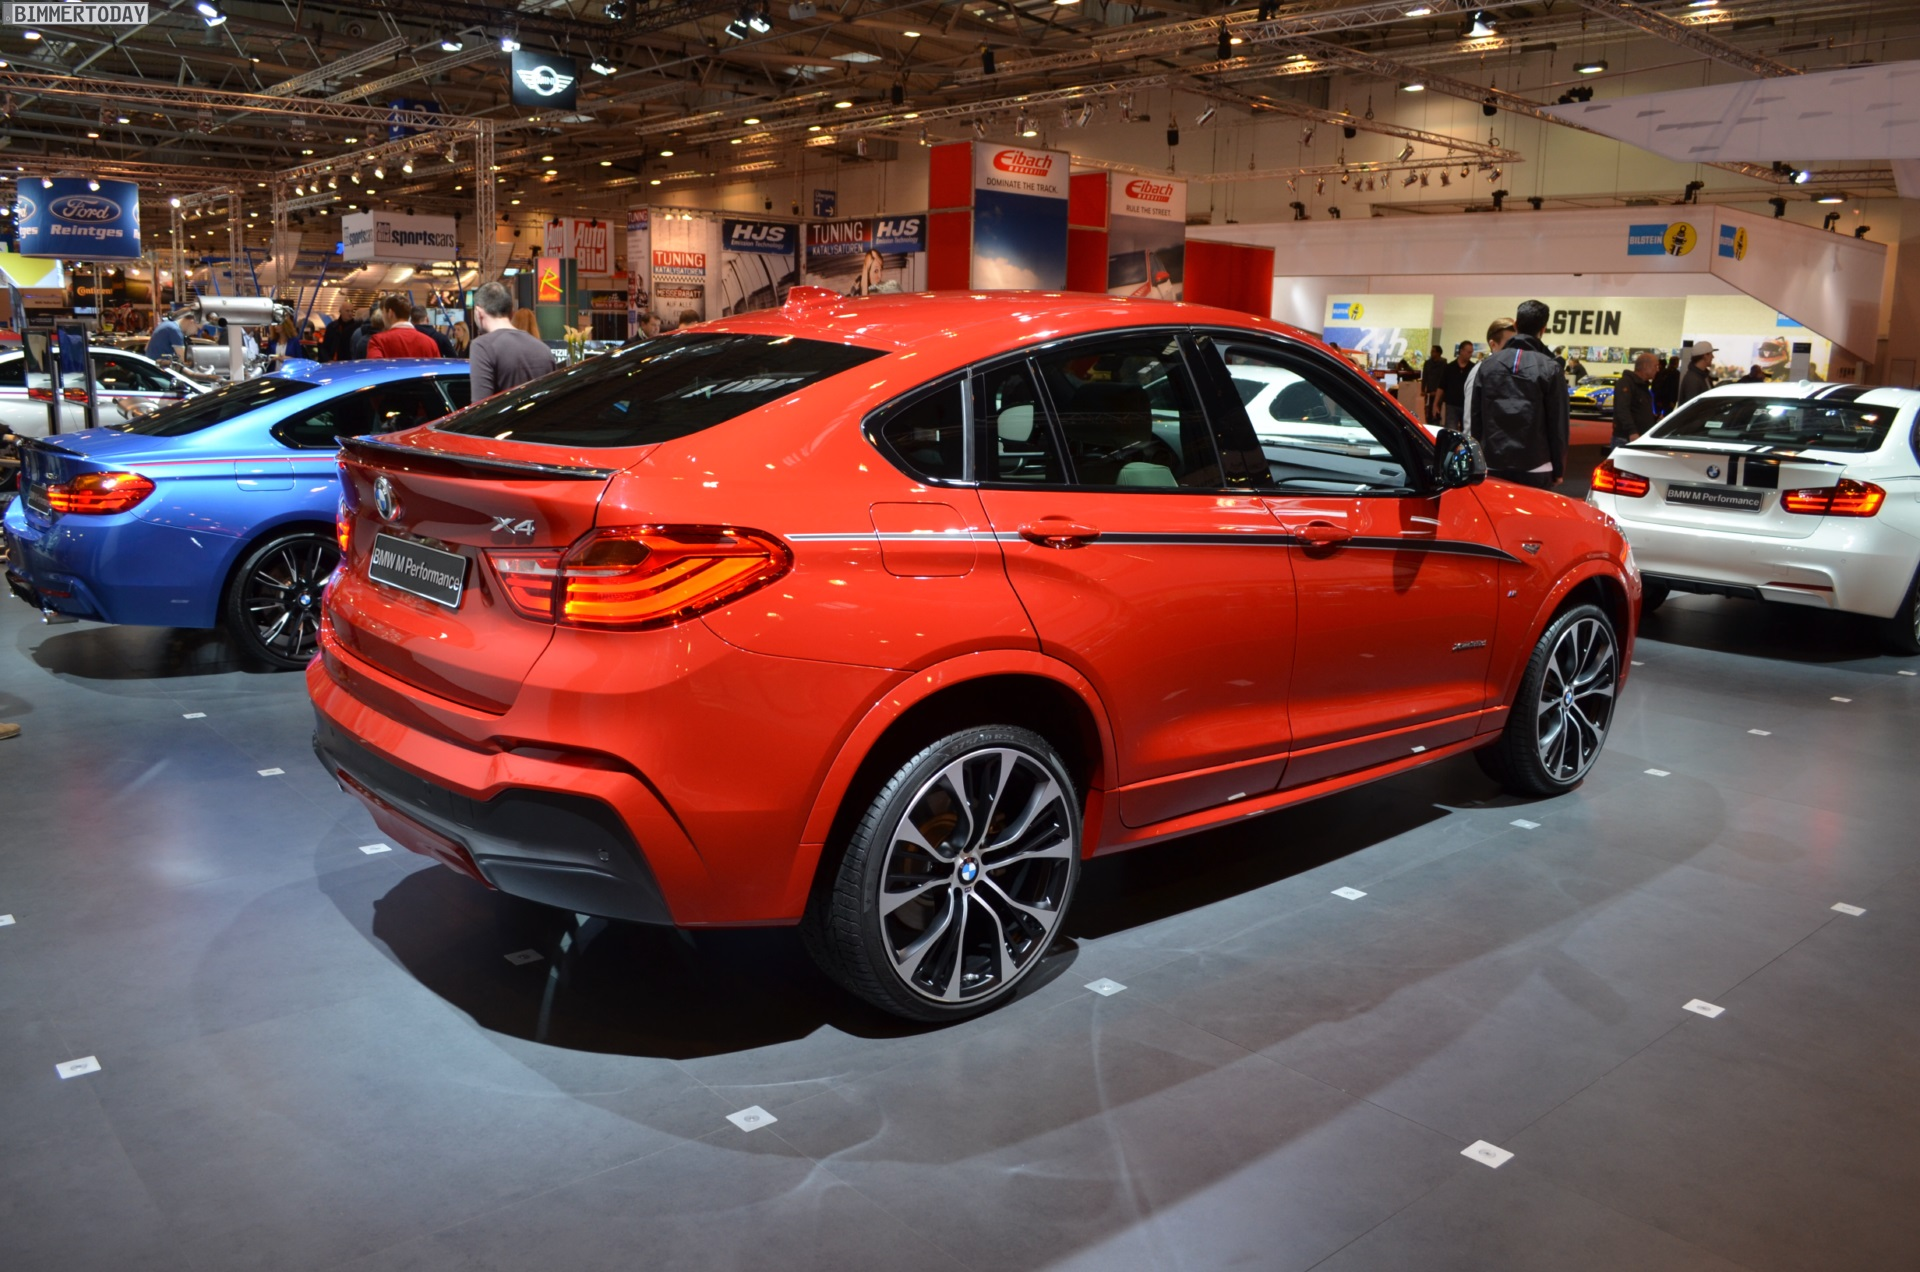 bmw m performance tuning for the bmw x4 at 2014 essen motor showbmw m performance bmw x4 f26 melbourne rot essen 2014 04 750x496